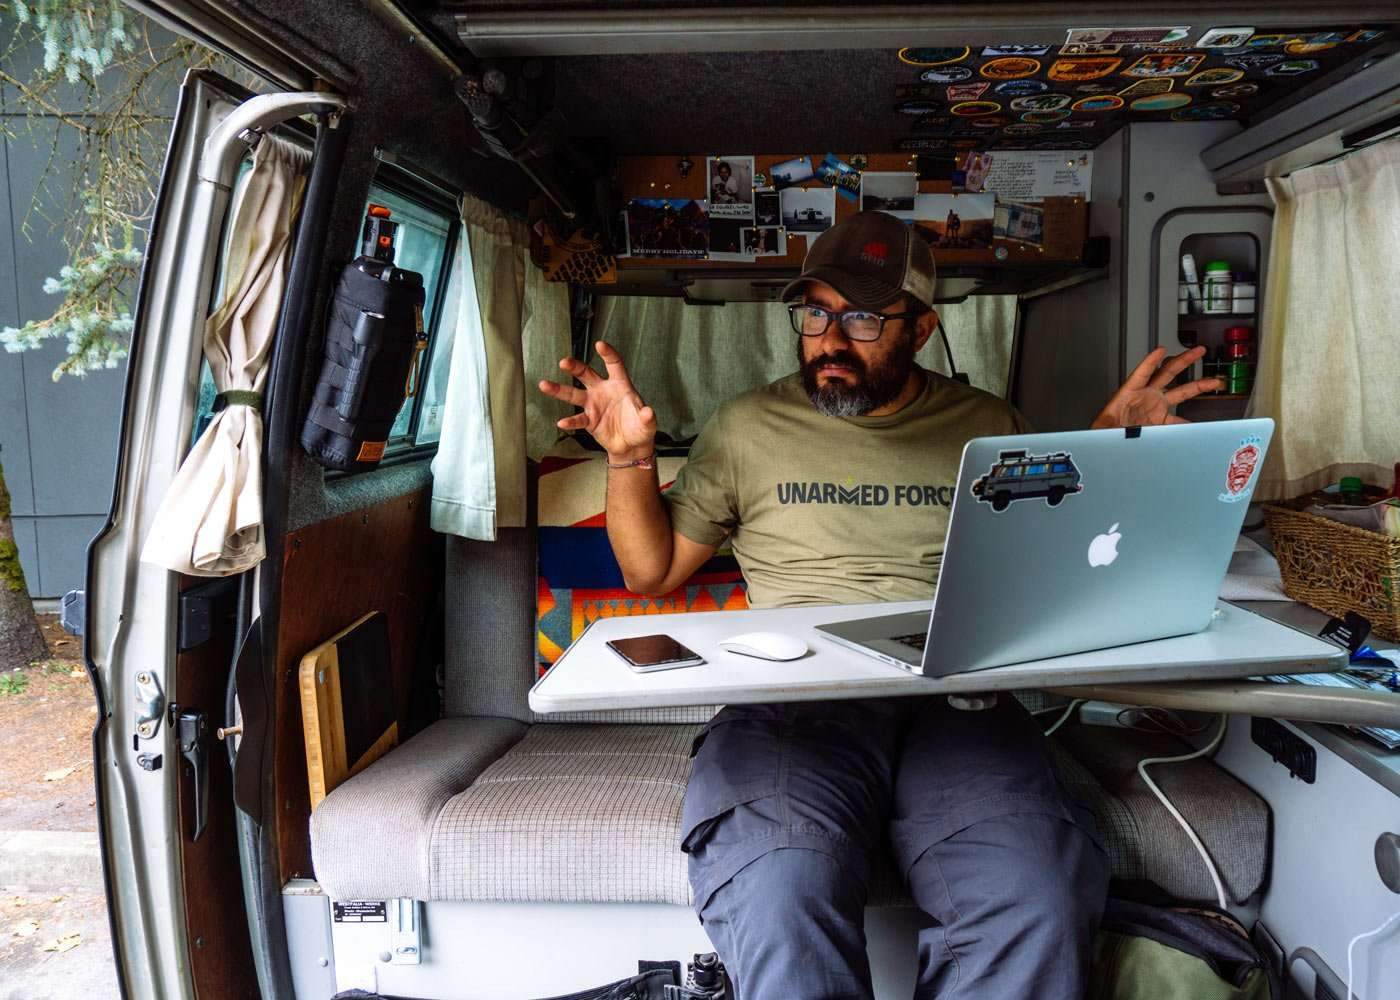 a bearded young man working on a macbook from a VW vanagon